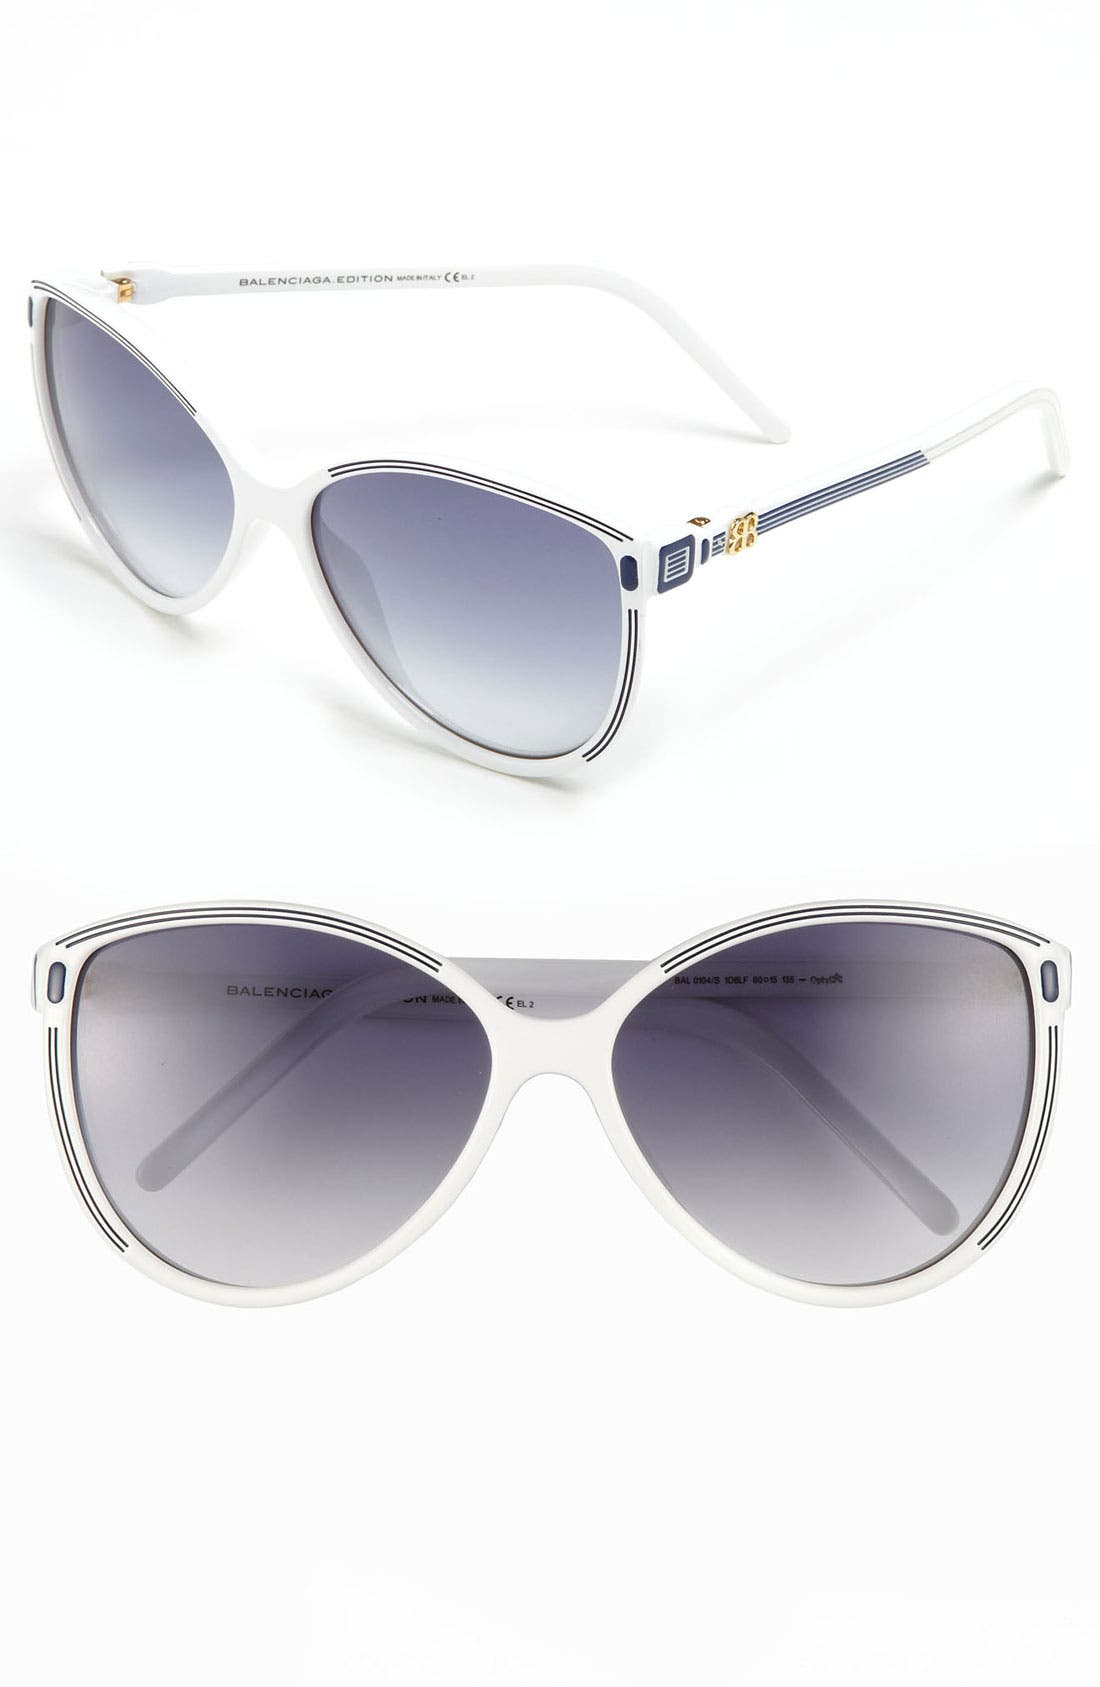 Alternate Image 1 Selected - Balenciaga Paris 60mm Sunglasses